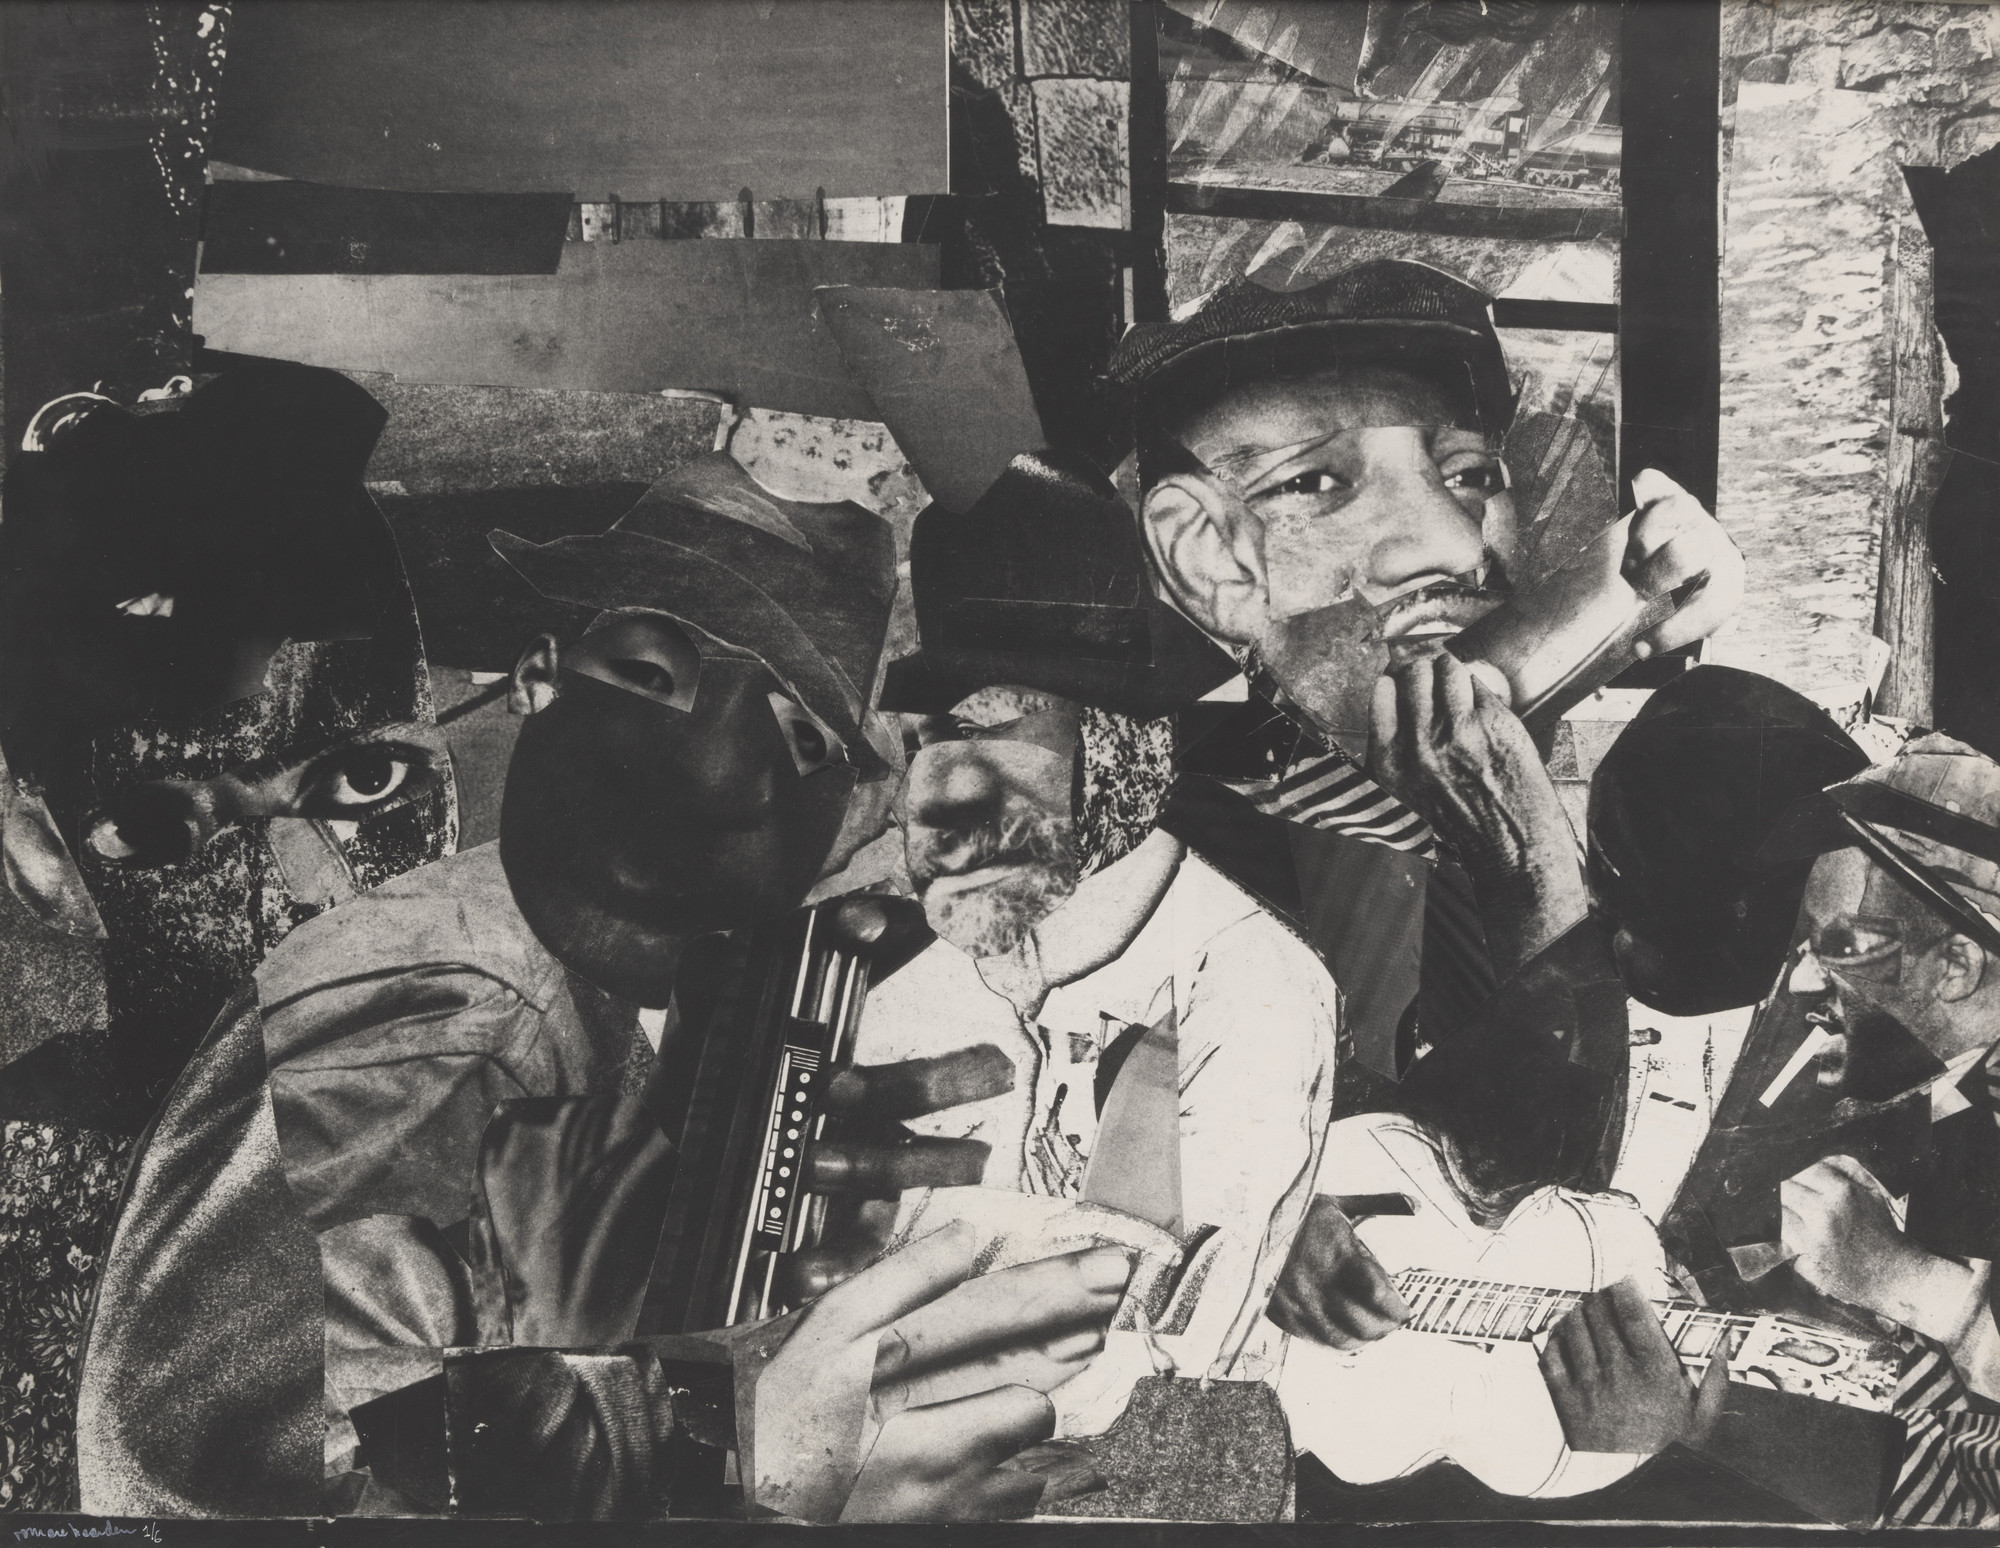 Romare Bearden. Train Whistle Blues No. 1. 1964